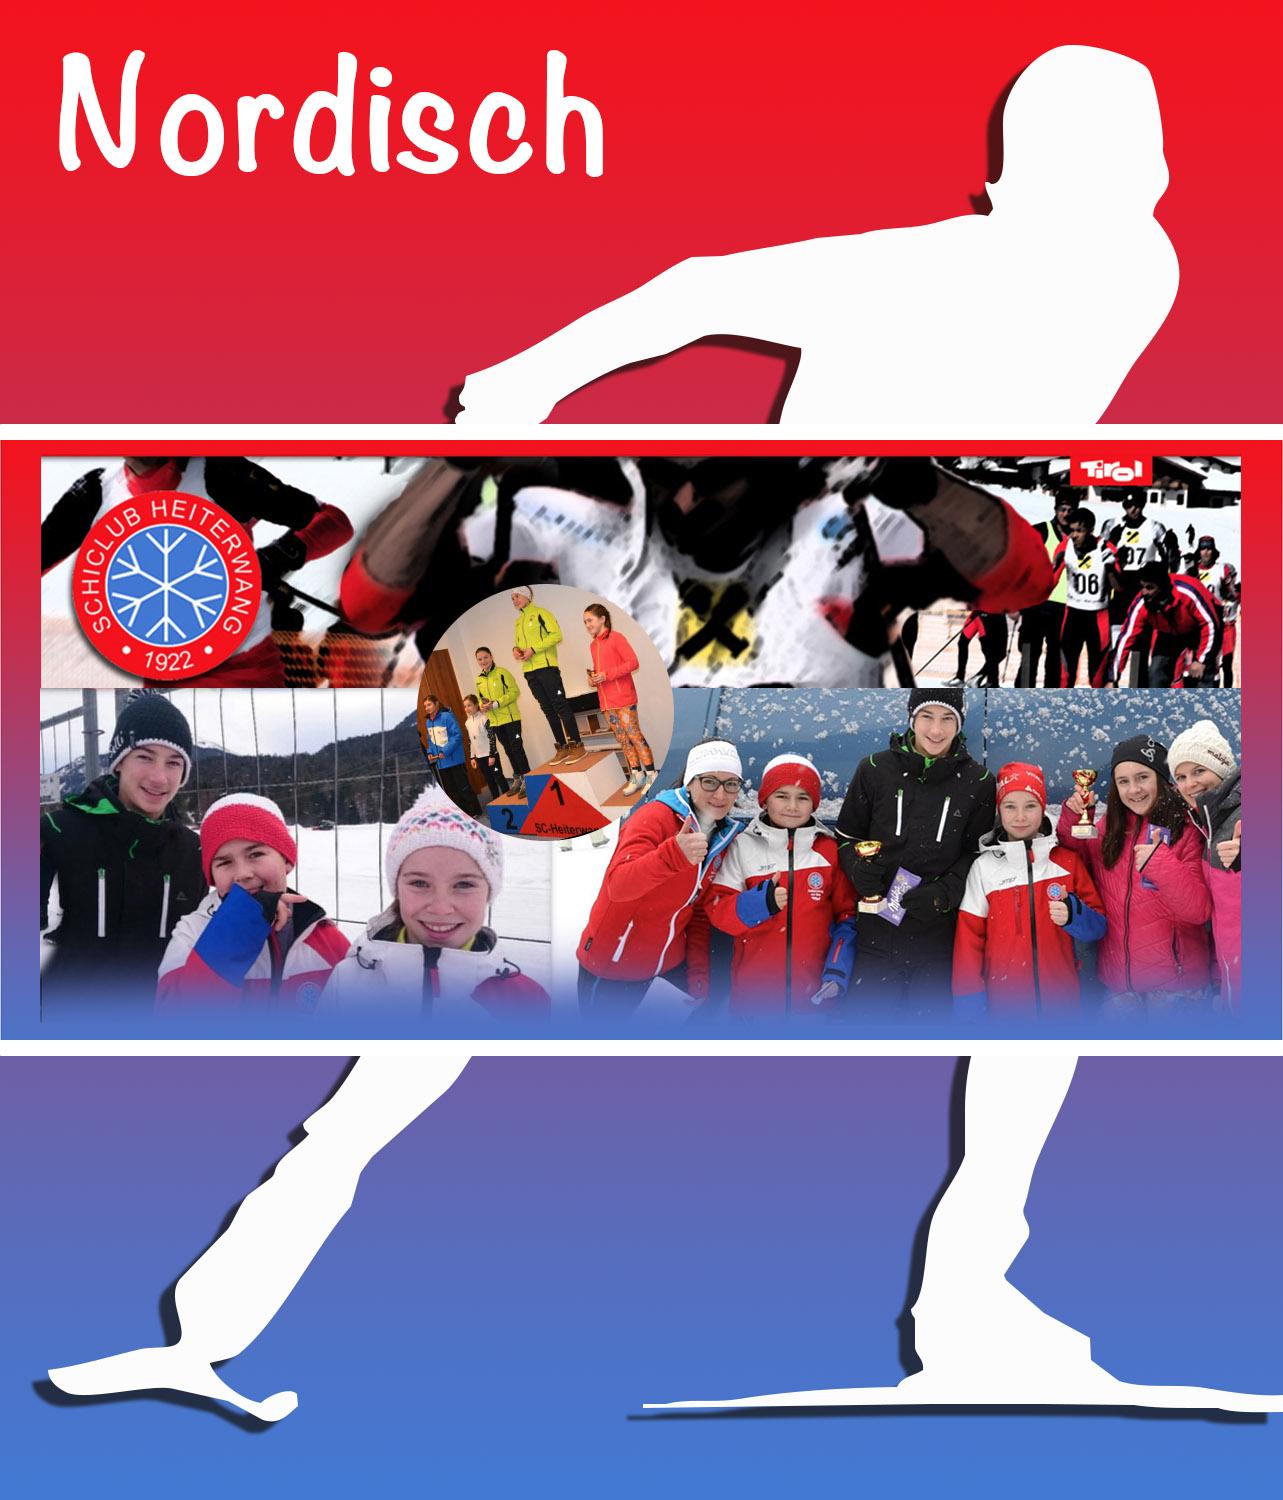 nordisch collage sc